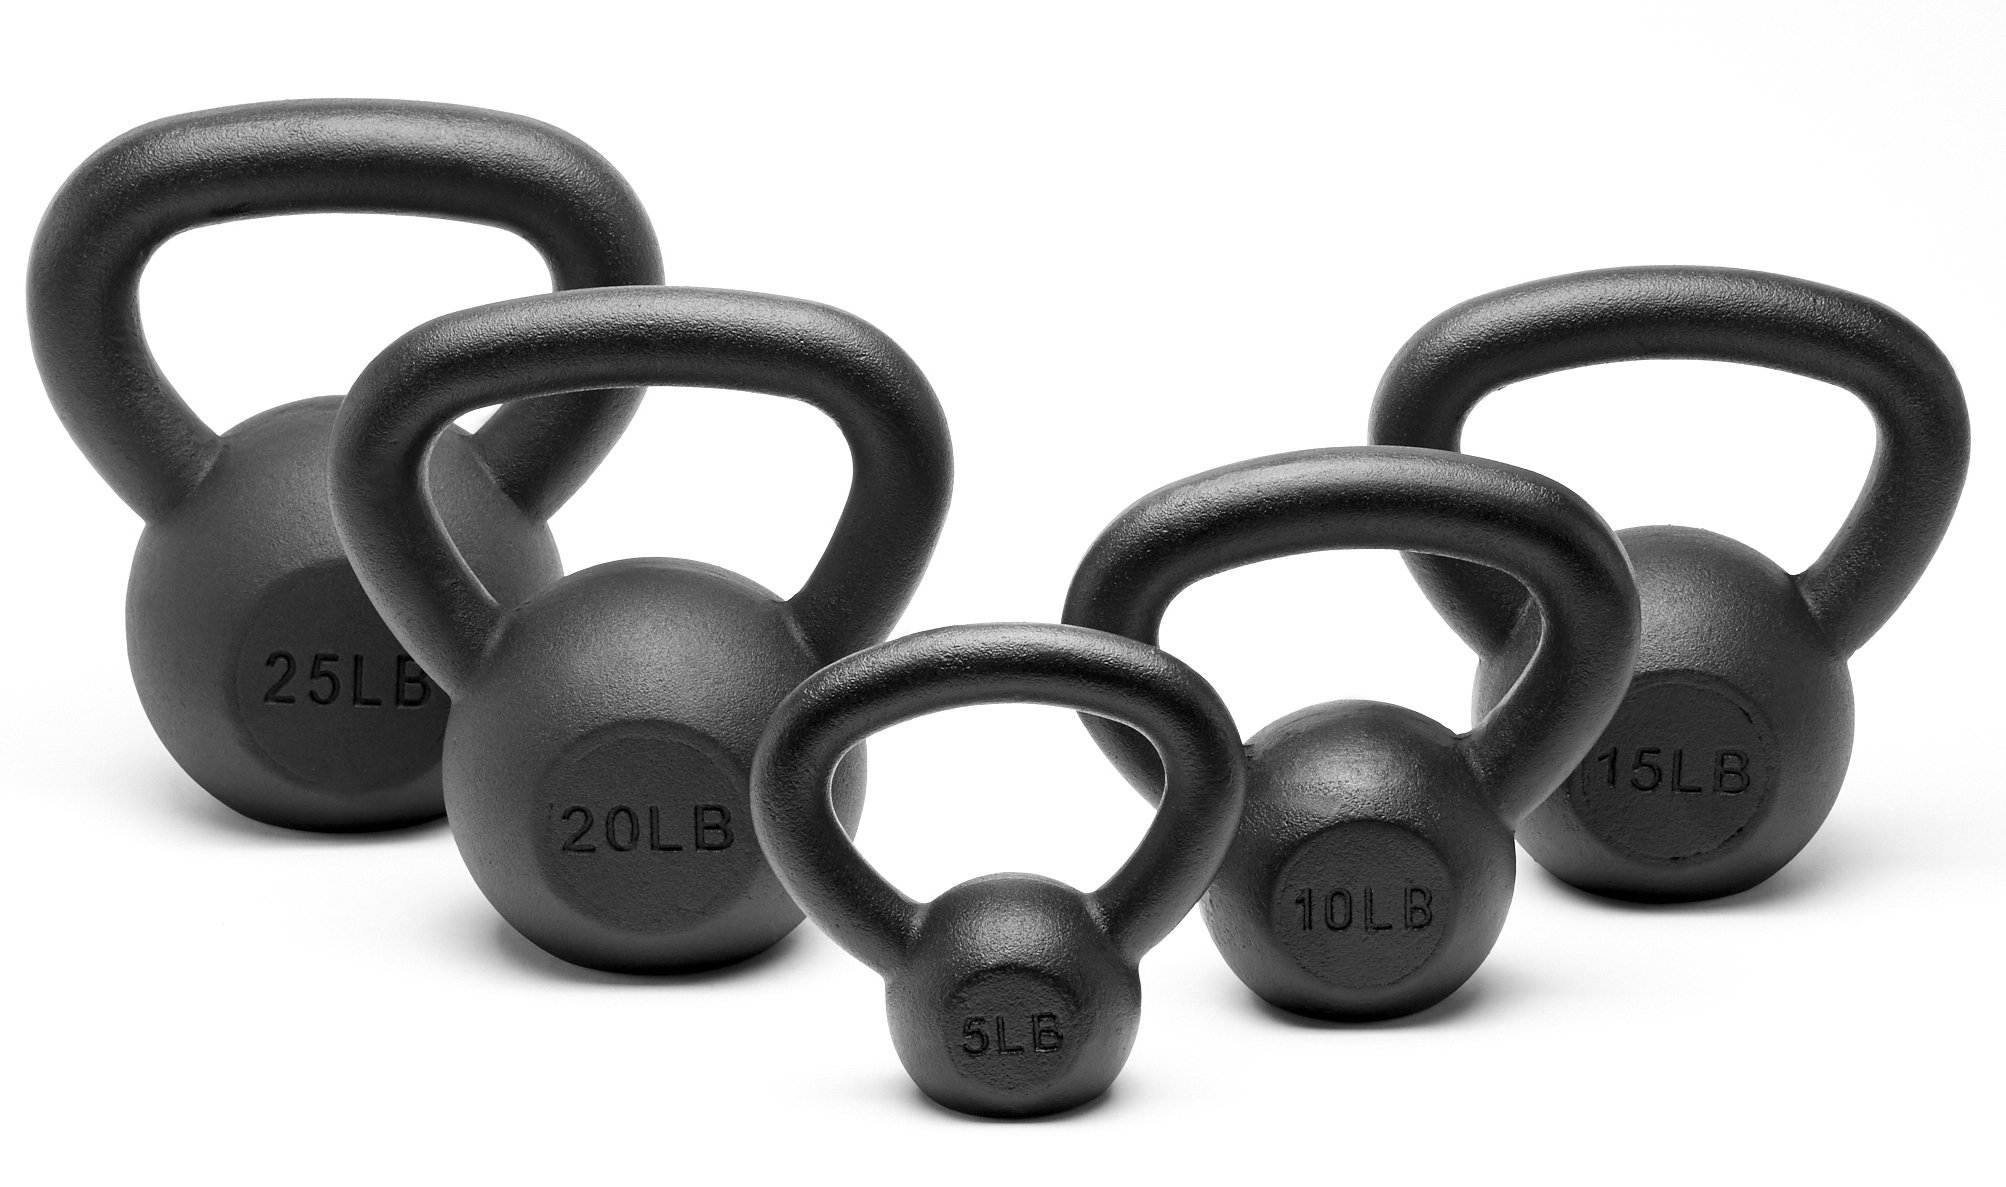 Unipack Powder Coated Solid Cast Iron Kettlebell Weights Set- (5+10+15+20+25 lbs)